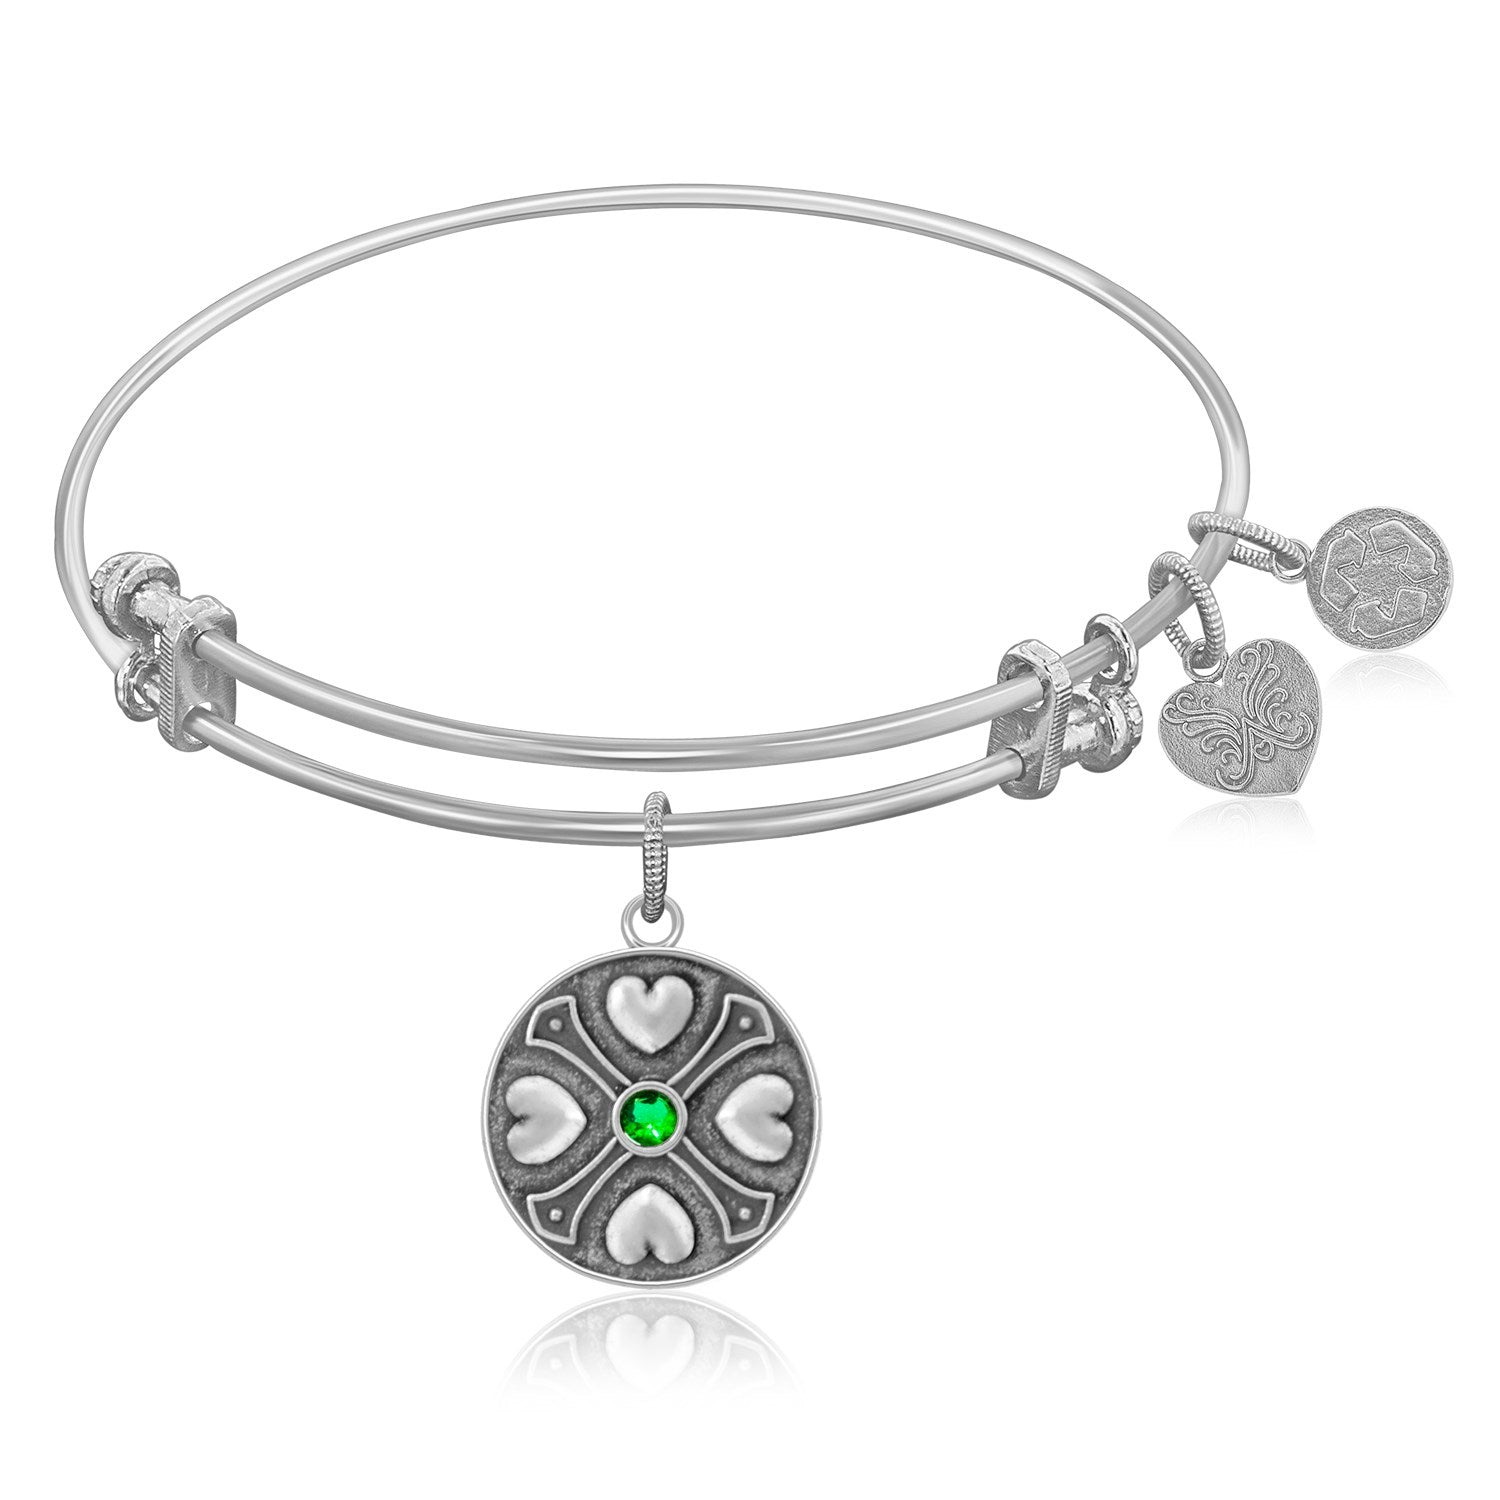 Expandable Bangle in White Tone Brass with Emerald May Symbol